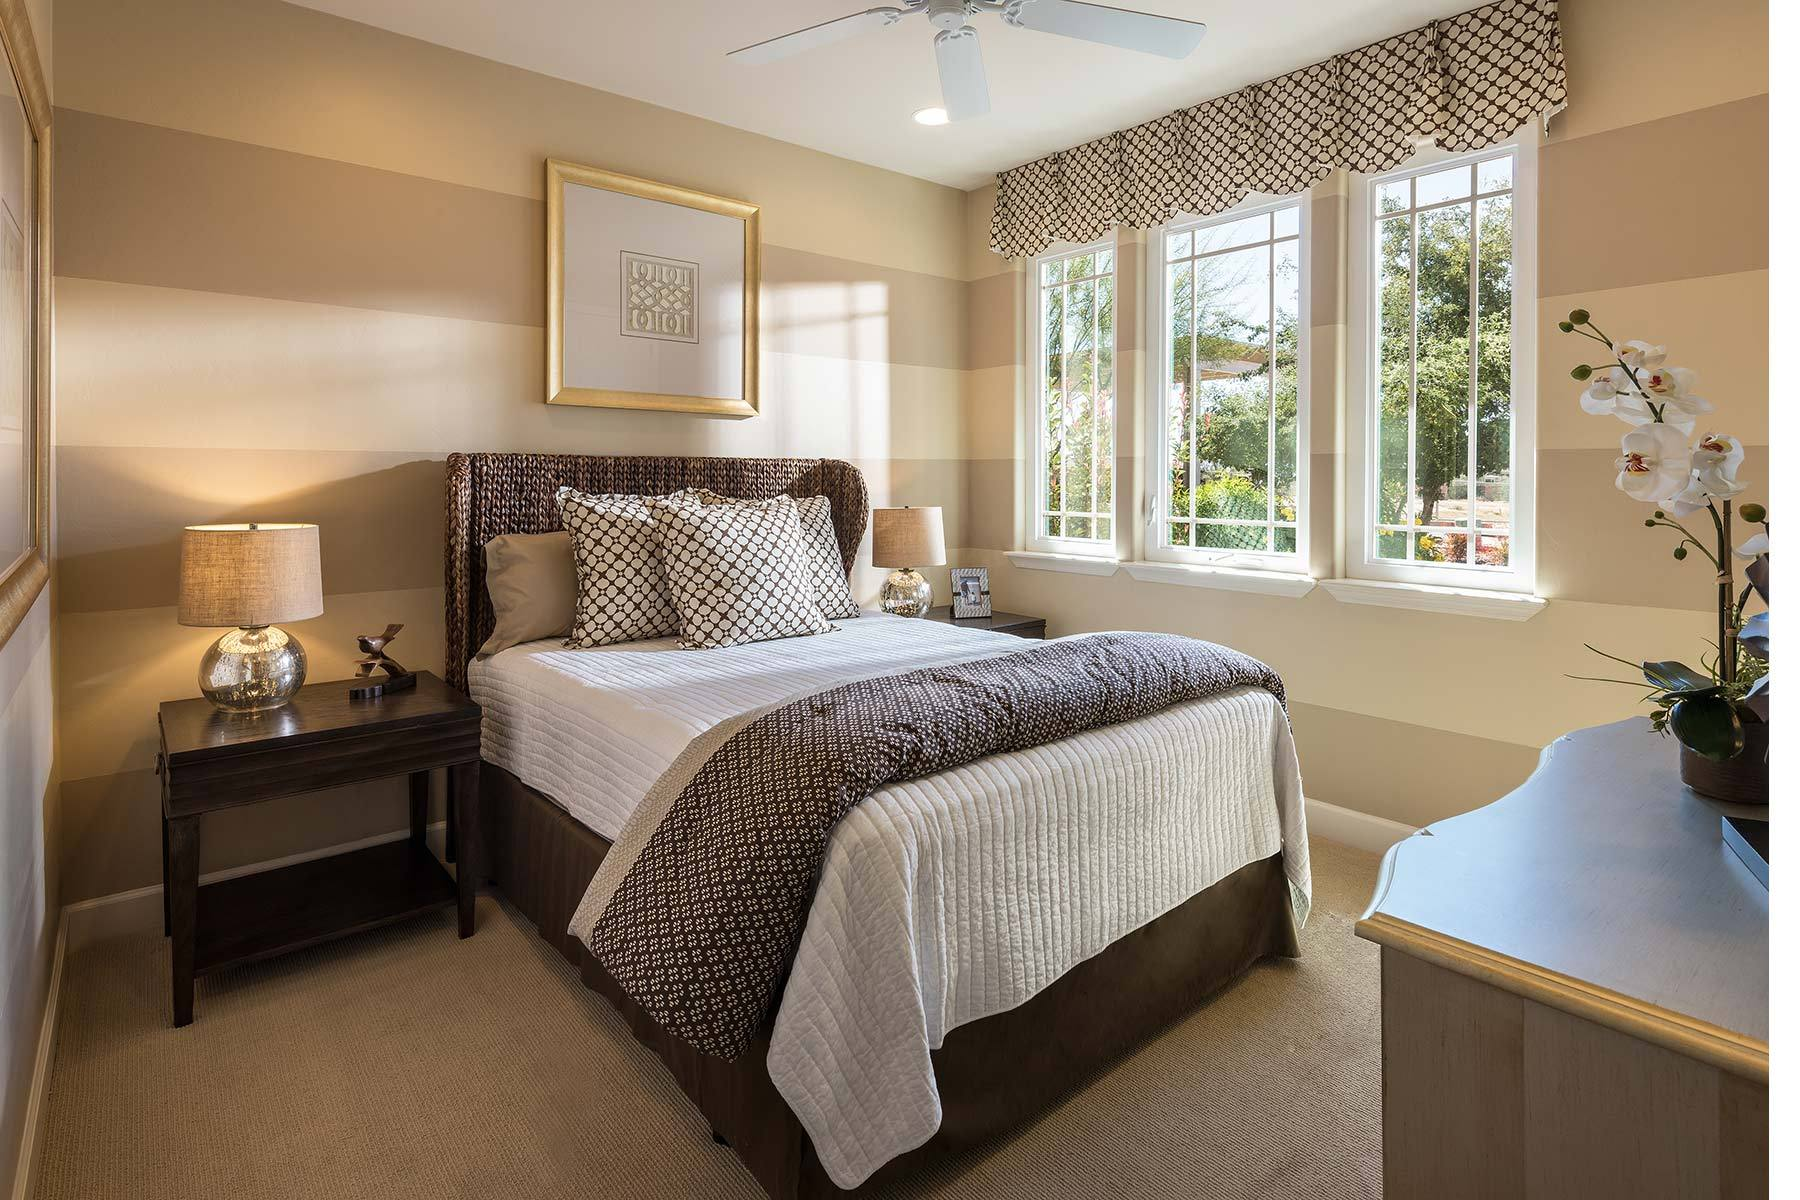 Bedroom featured in the Lookout By Mattamy Homes in Tucson, AZ